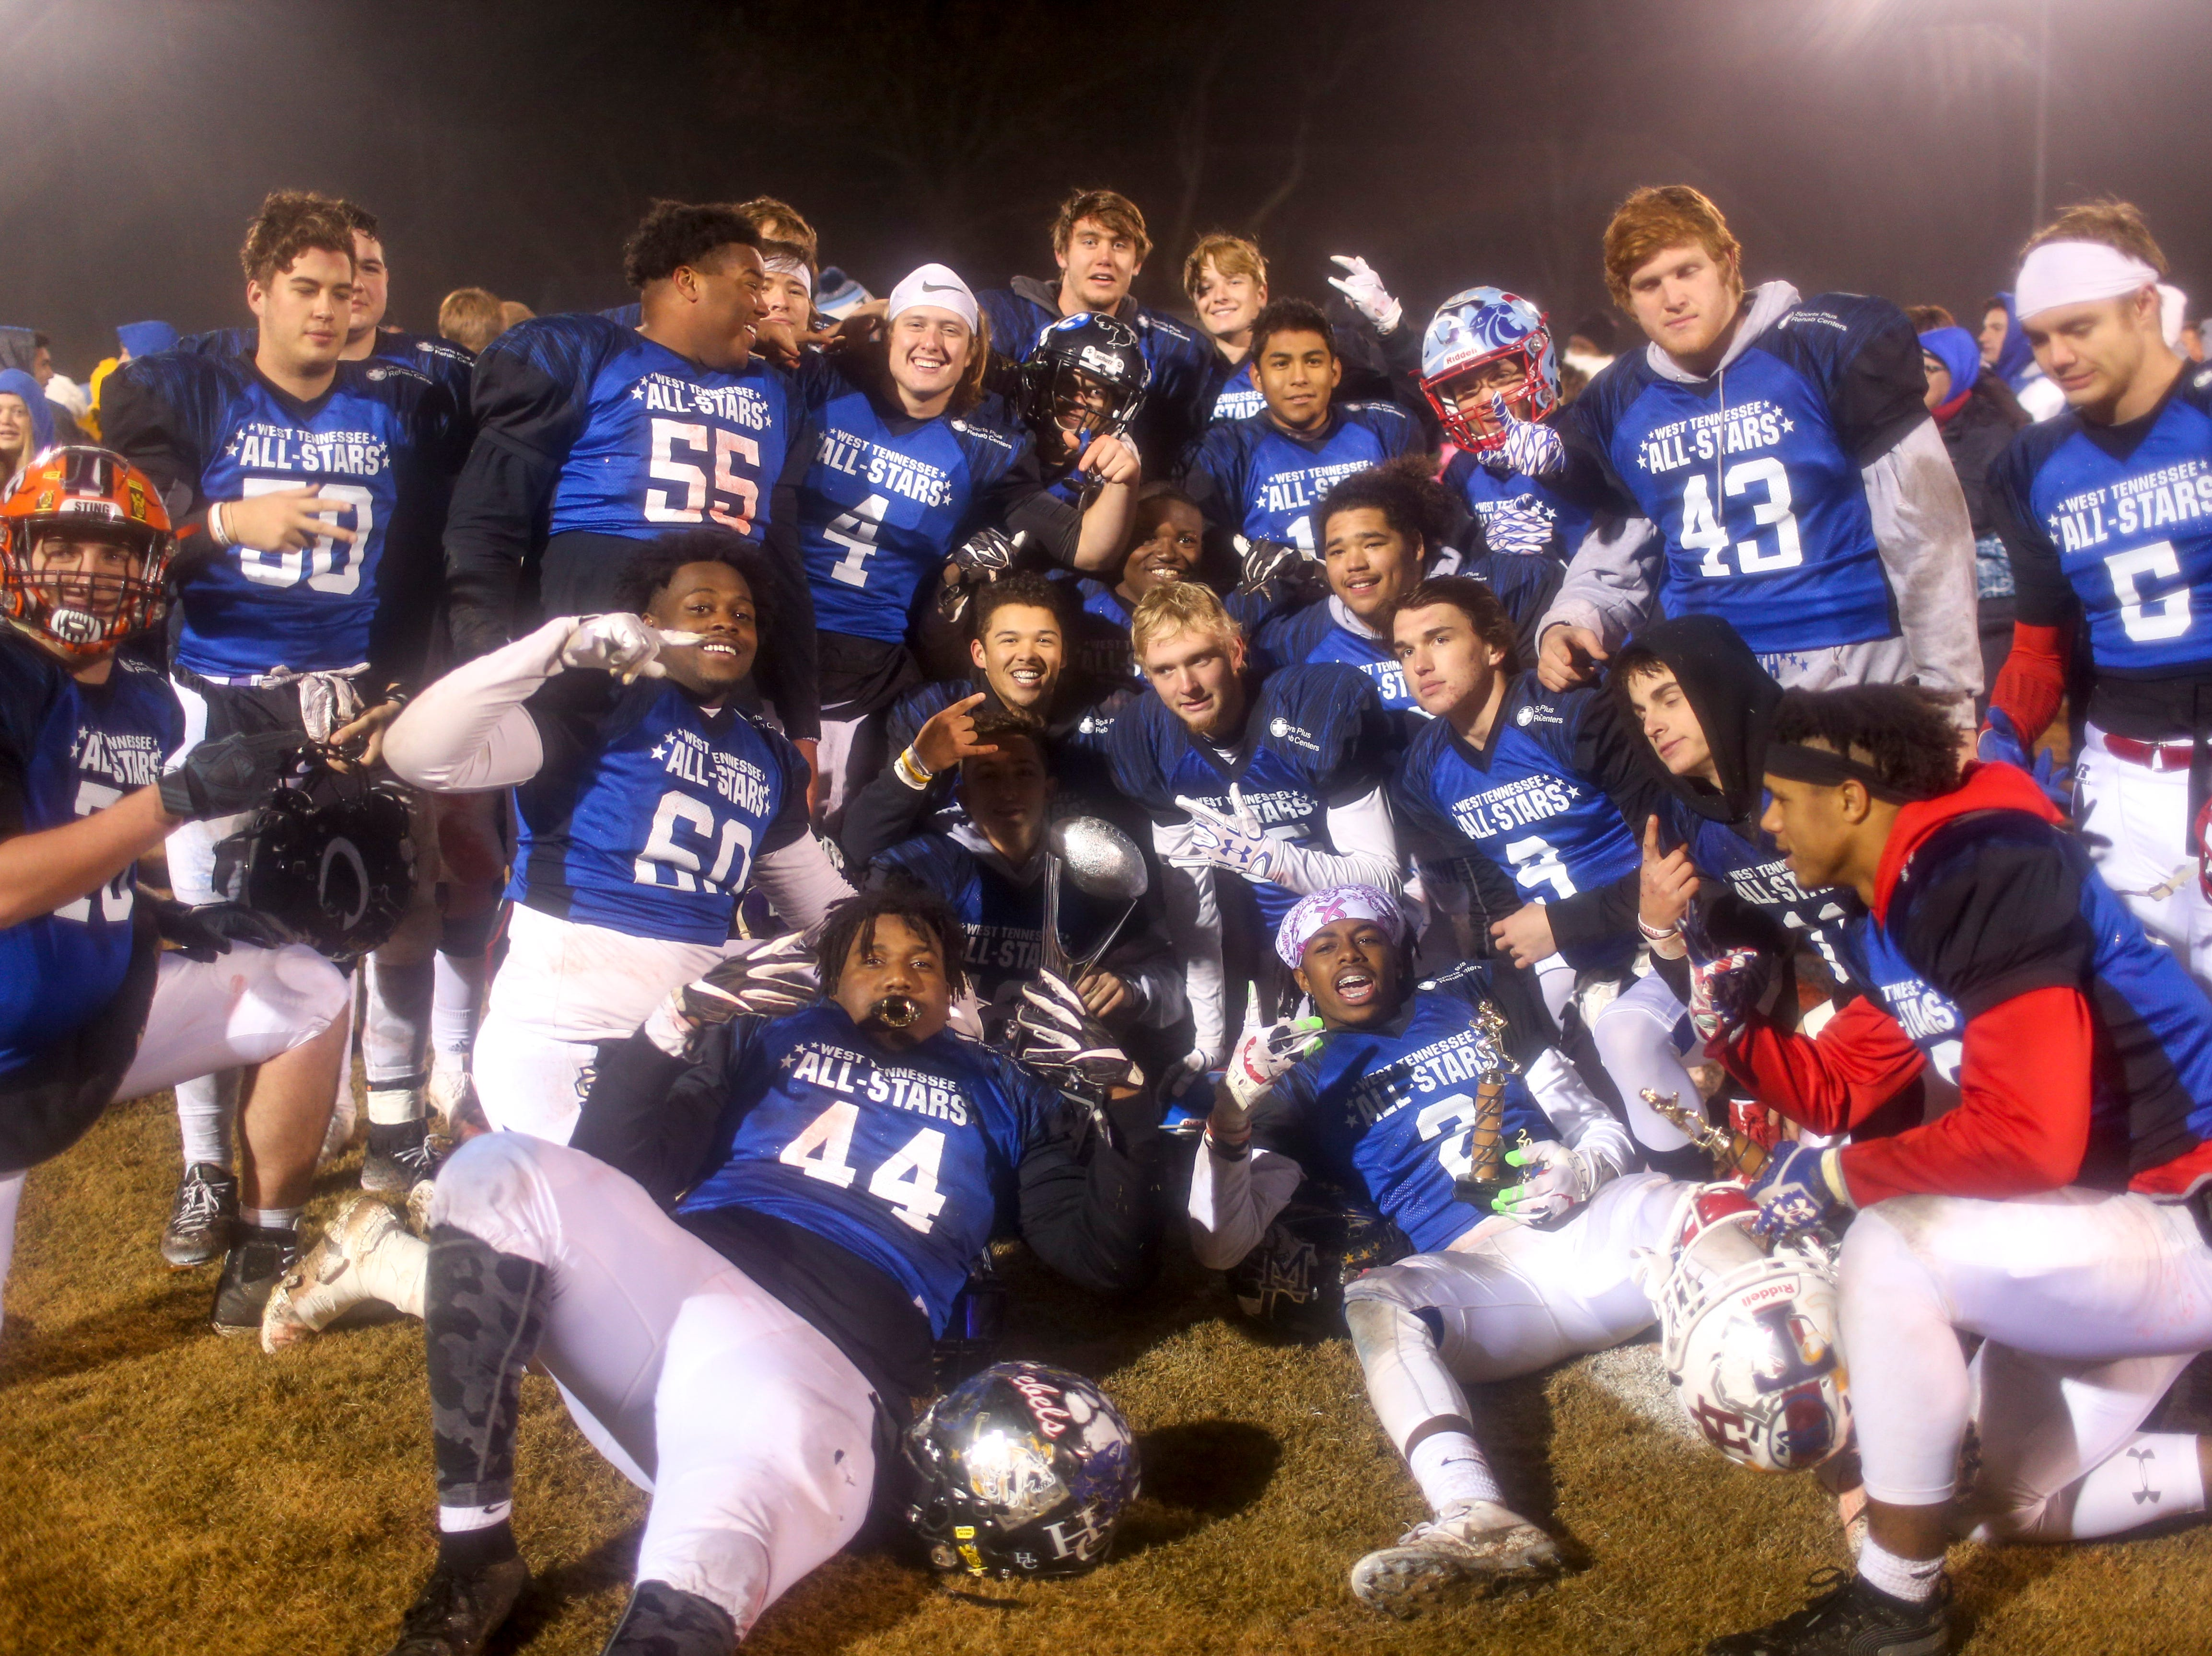 South players mesh together for a photo with the trophy after winning the West Tennessee All-Star football game at University School of Jackson in Jackson, Tenn., on Friday, Dec. 7, 2018.